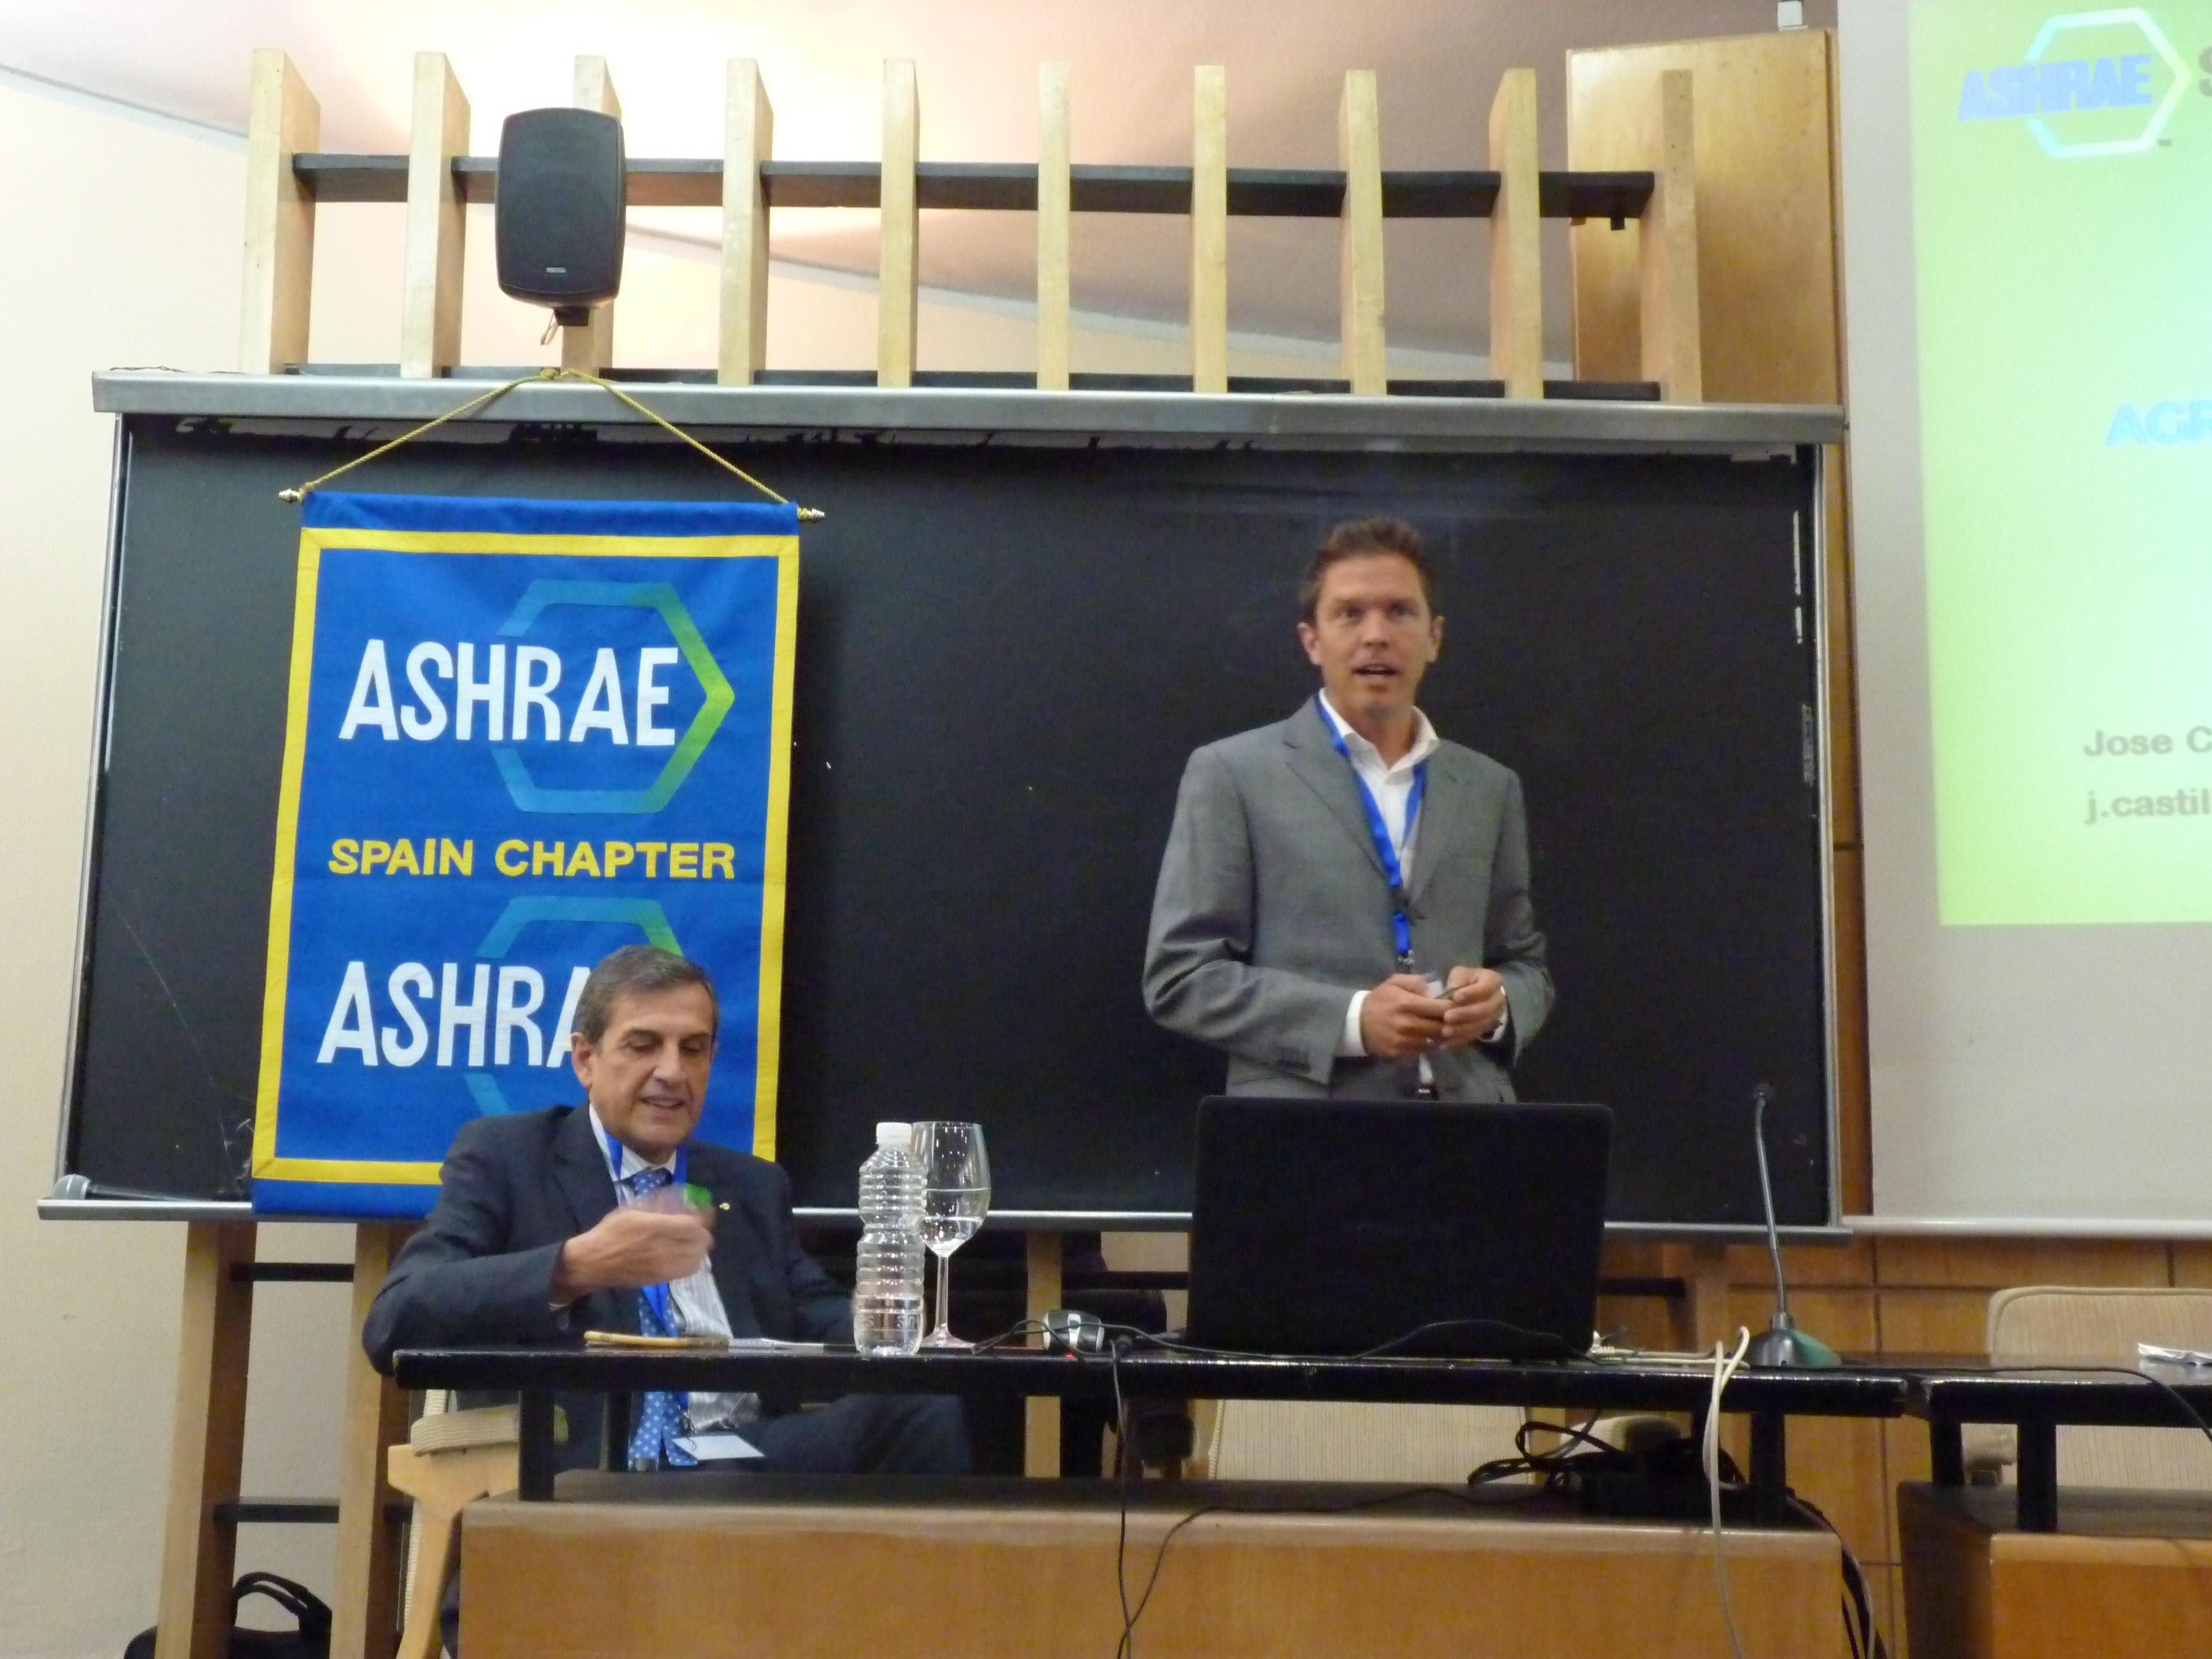 ashrae-spain-chapter-jose-oct2016